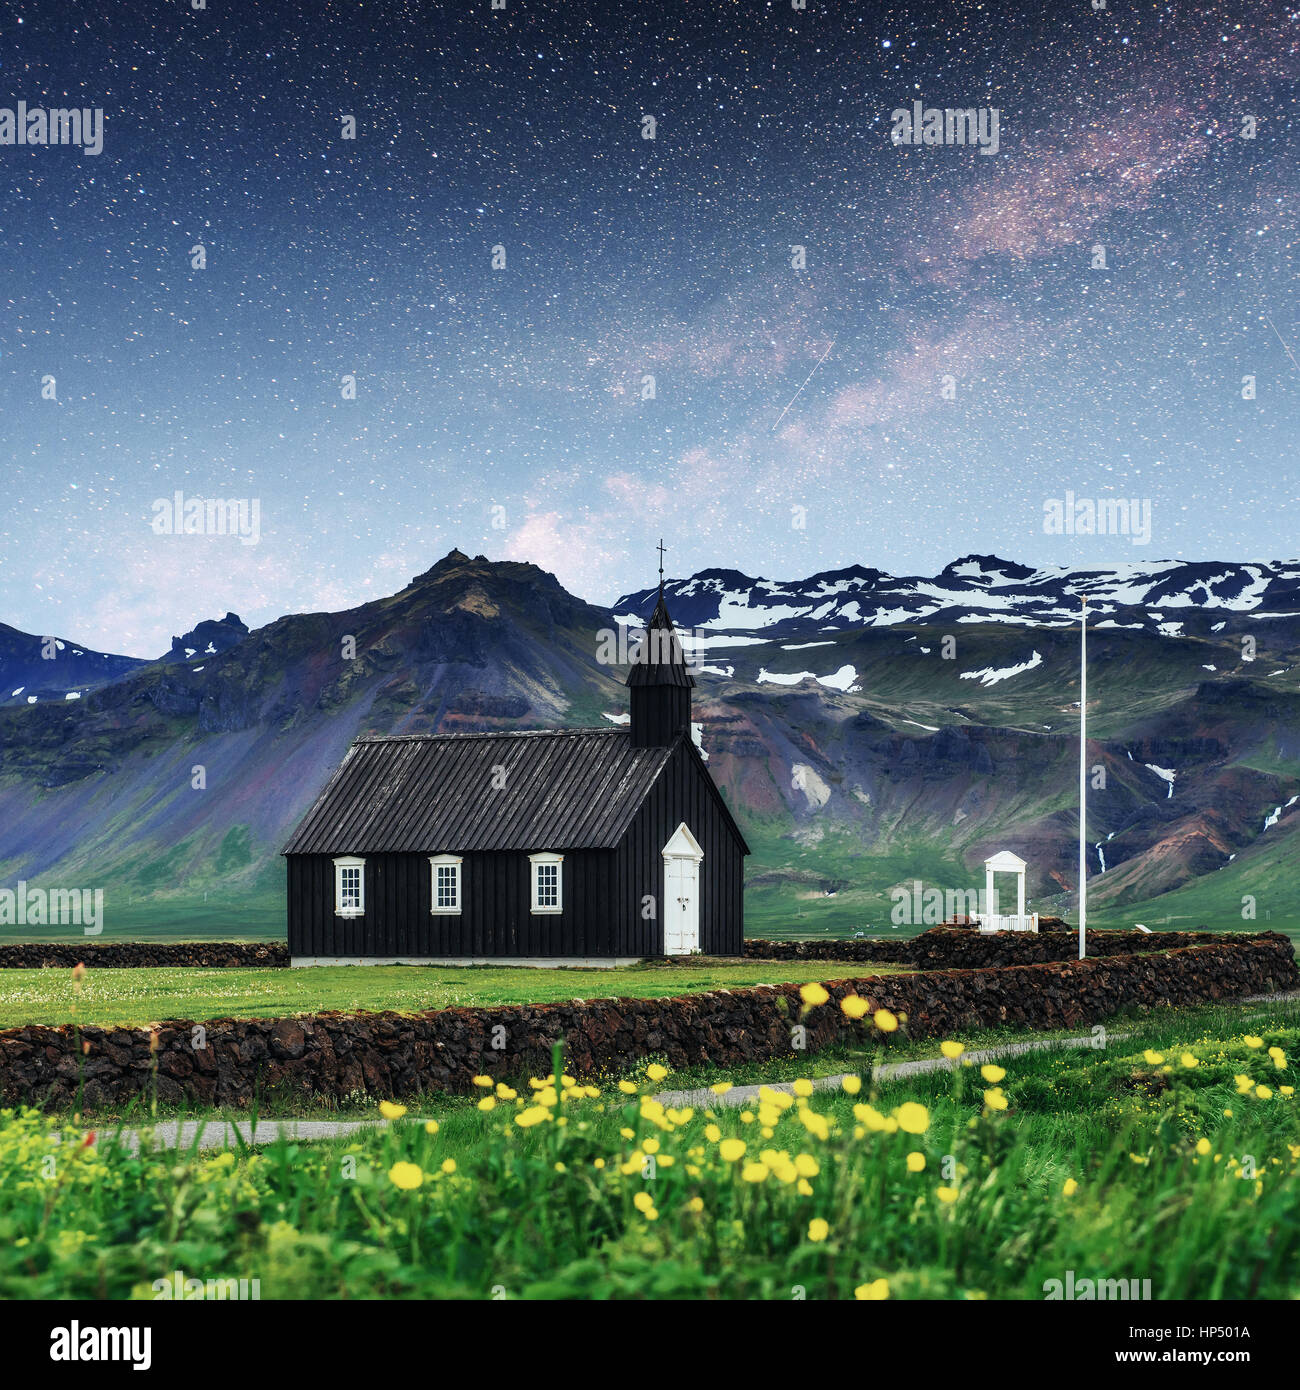 Mountain View Iceland. Fantastic starry sky and the milky way - Stock Image